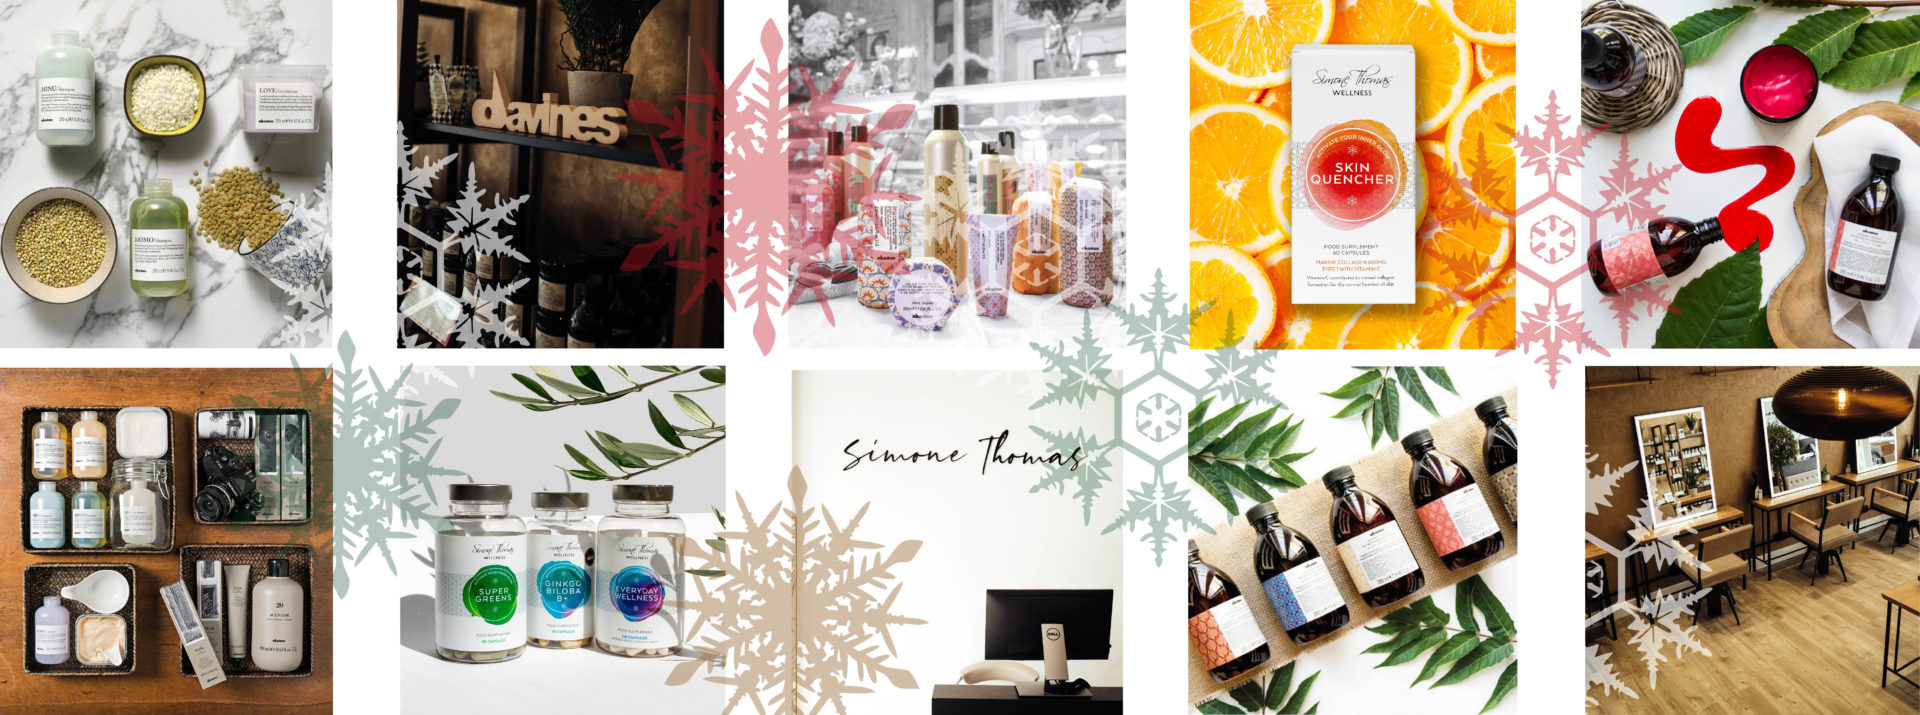 Simone Thomas' Advent Calendar Launches THIS Friday…